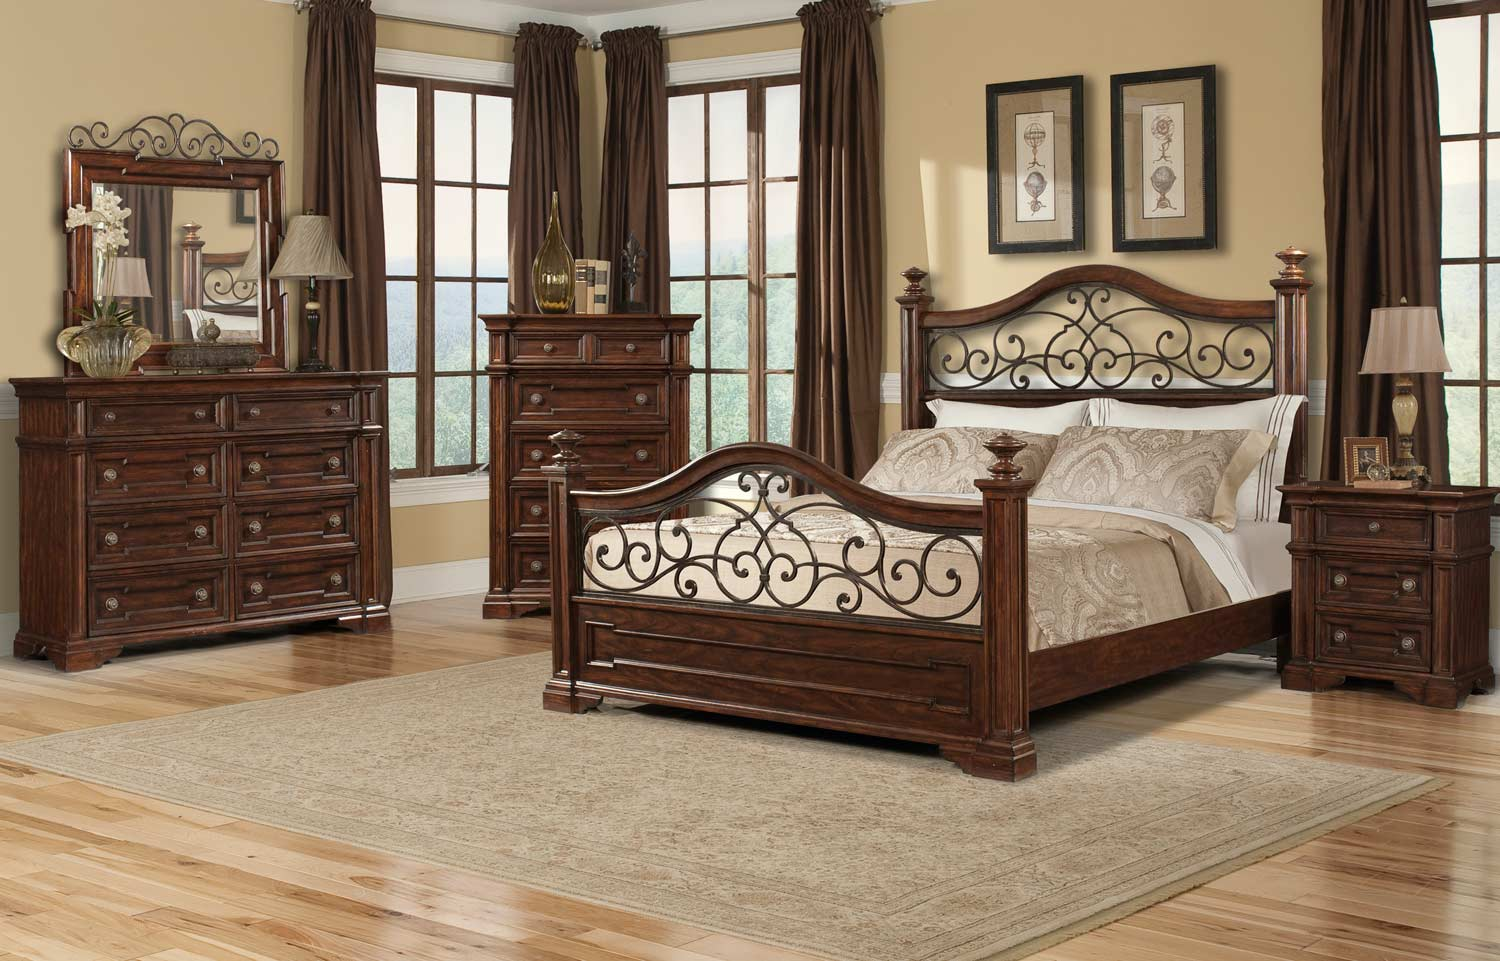 Klaussner San Marcos Bedroom Collection